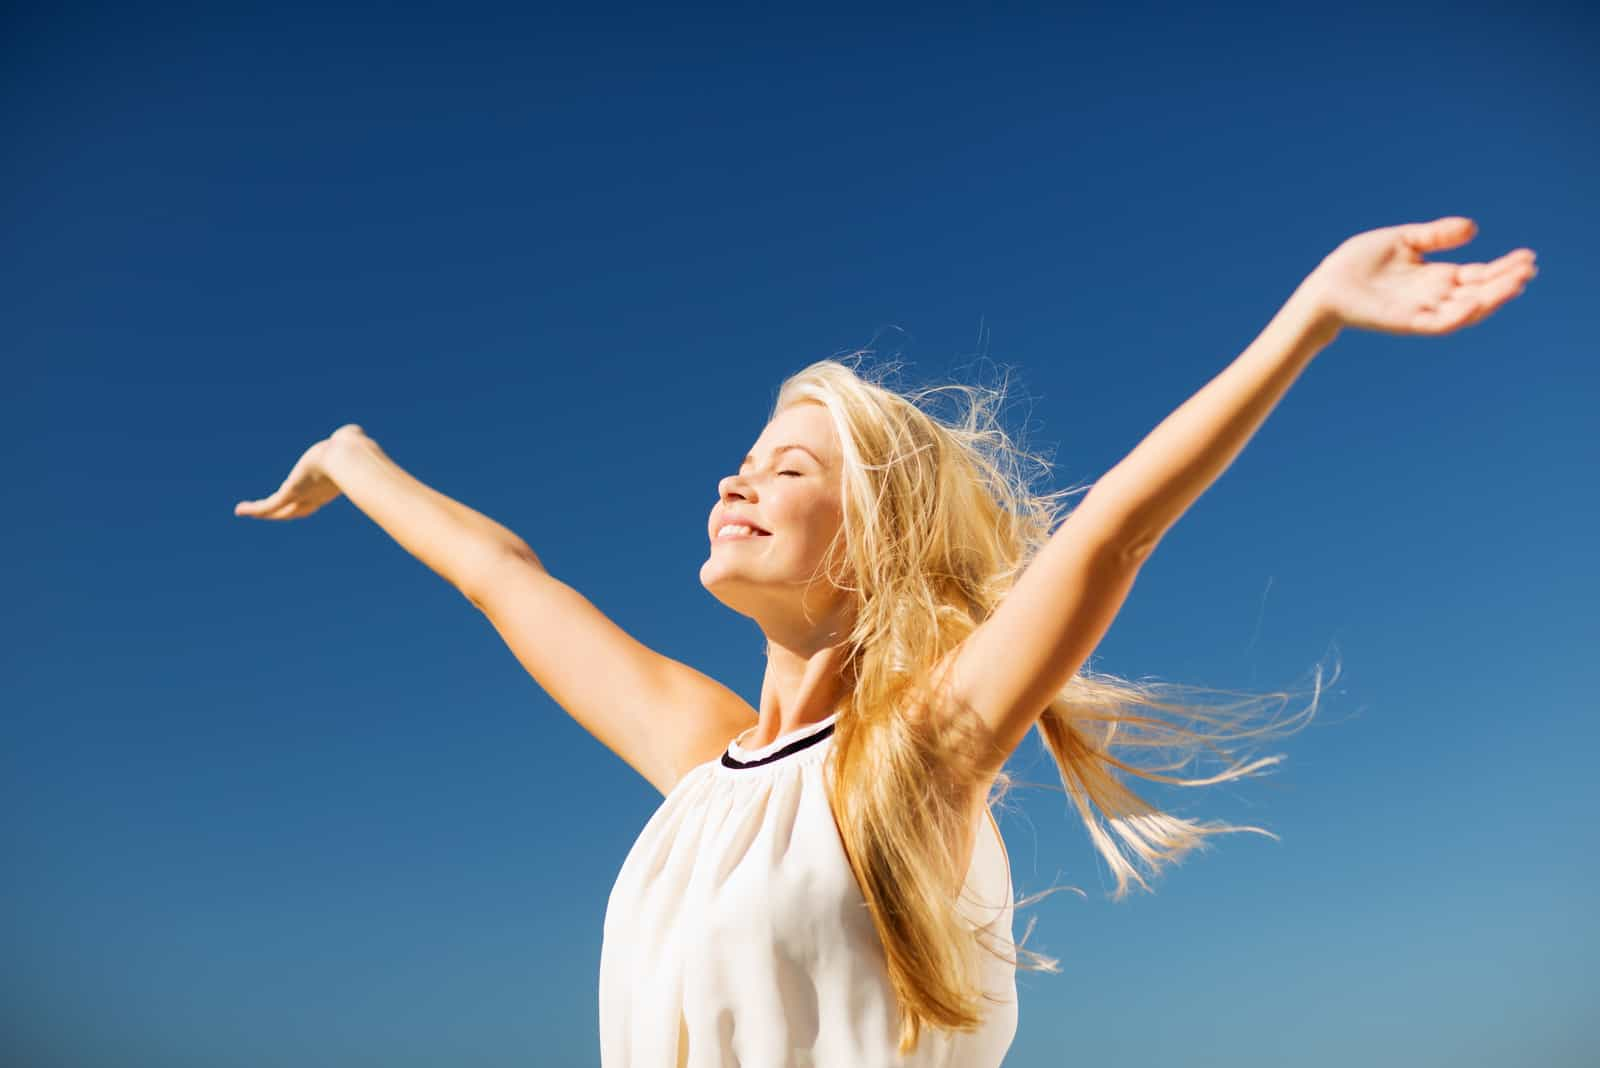 a beautiful woman with long blonde hair stands with her arms outstretched